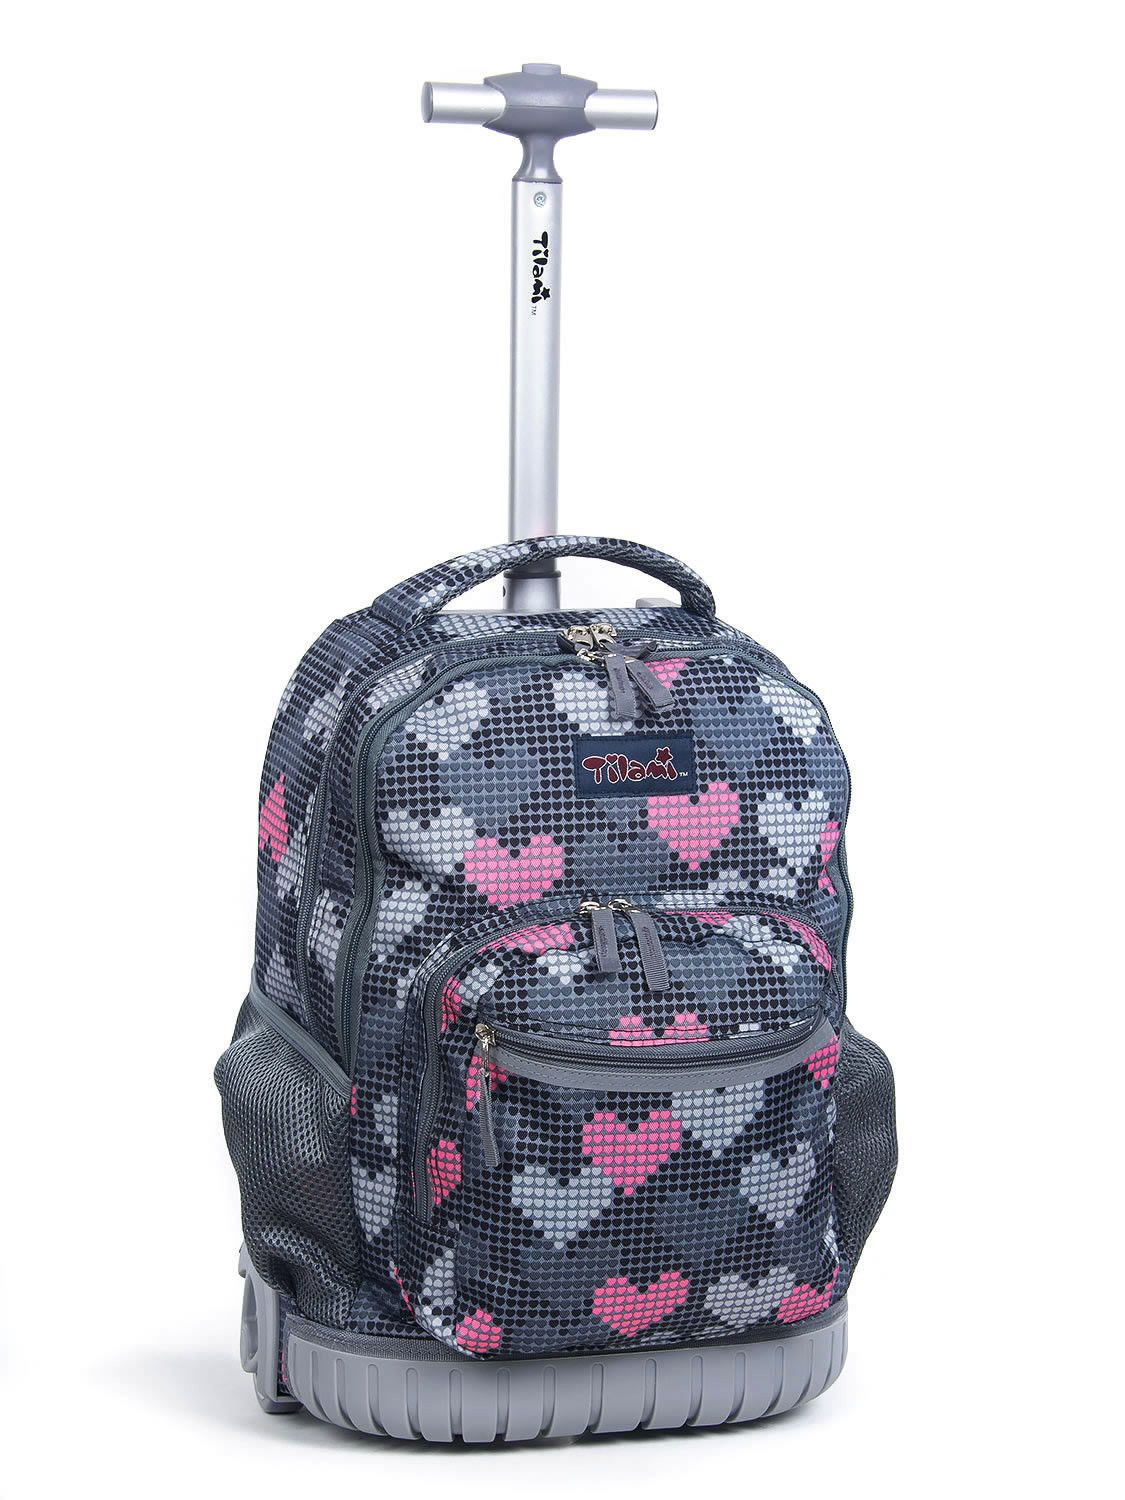 daa0d0d01bc9 Tilami® New Antifouling Design 18 Inch Human Engineering Design Laptop  Noiseless Wheeled Rolling Backpack - Pink Pilot Luggage for Girls - Falling  Love